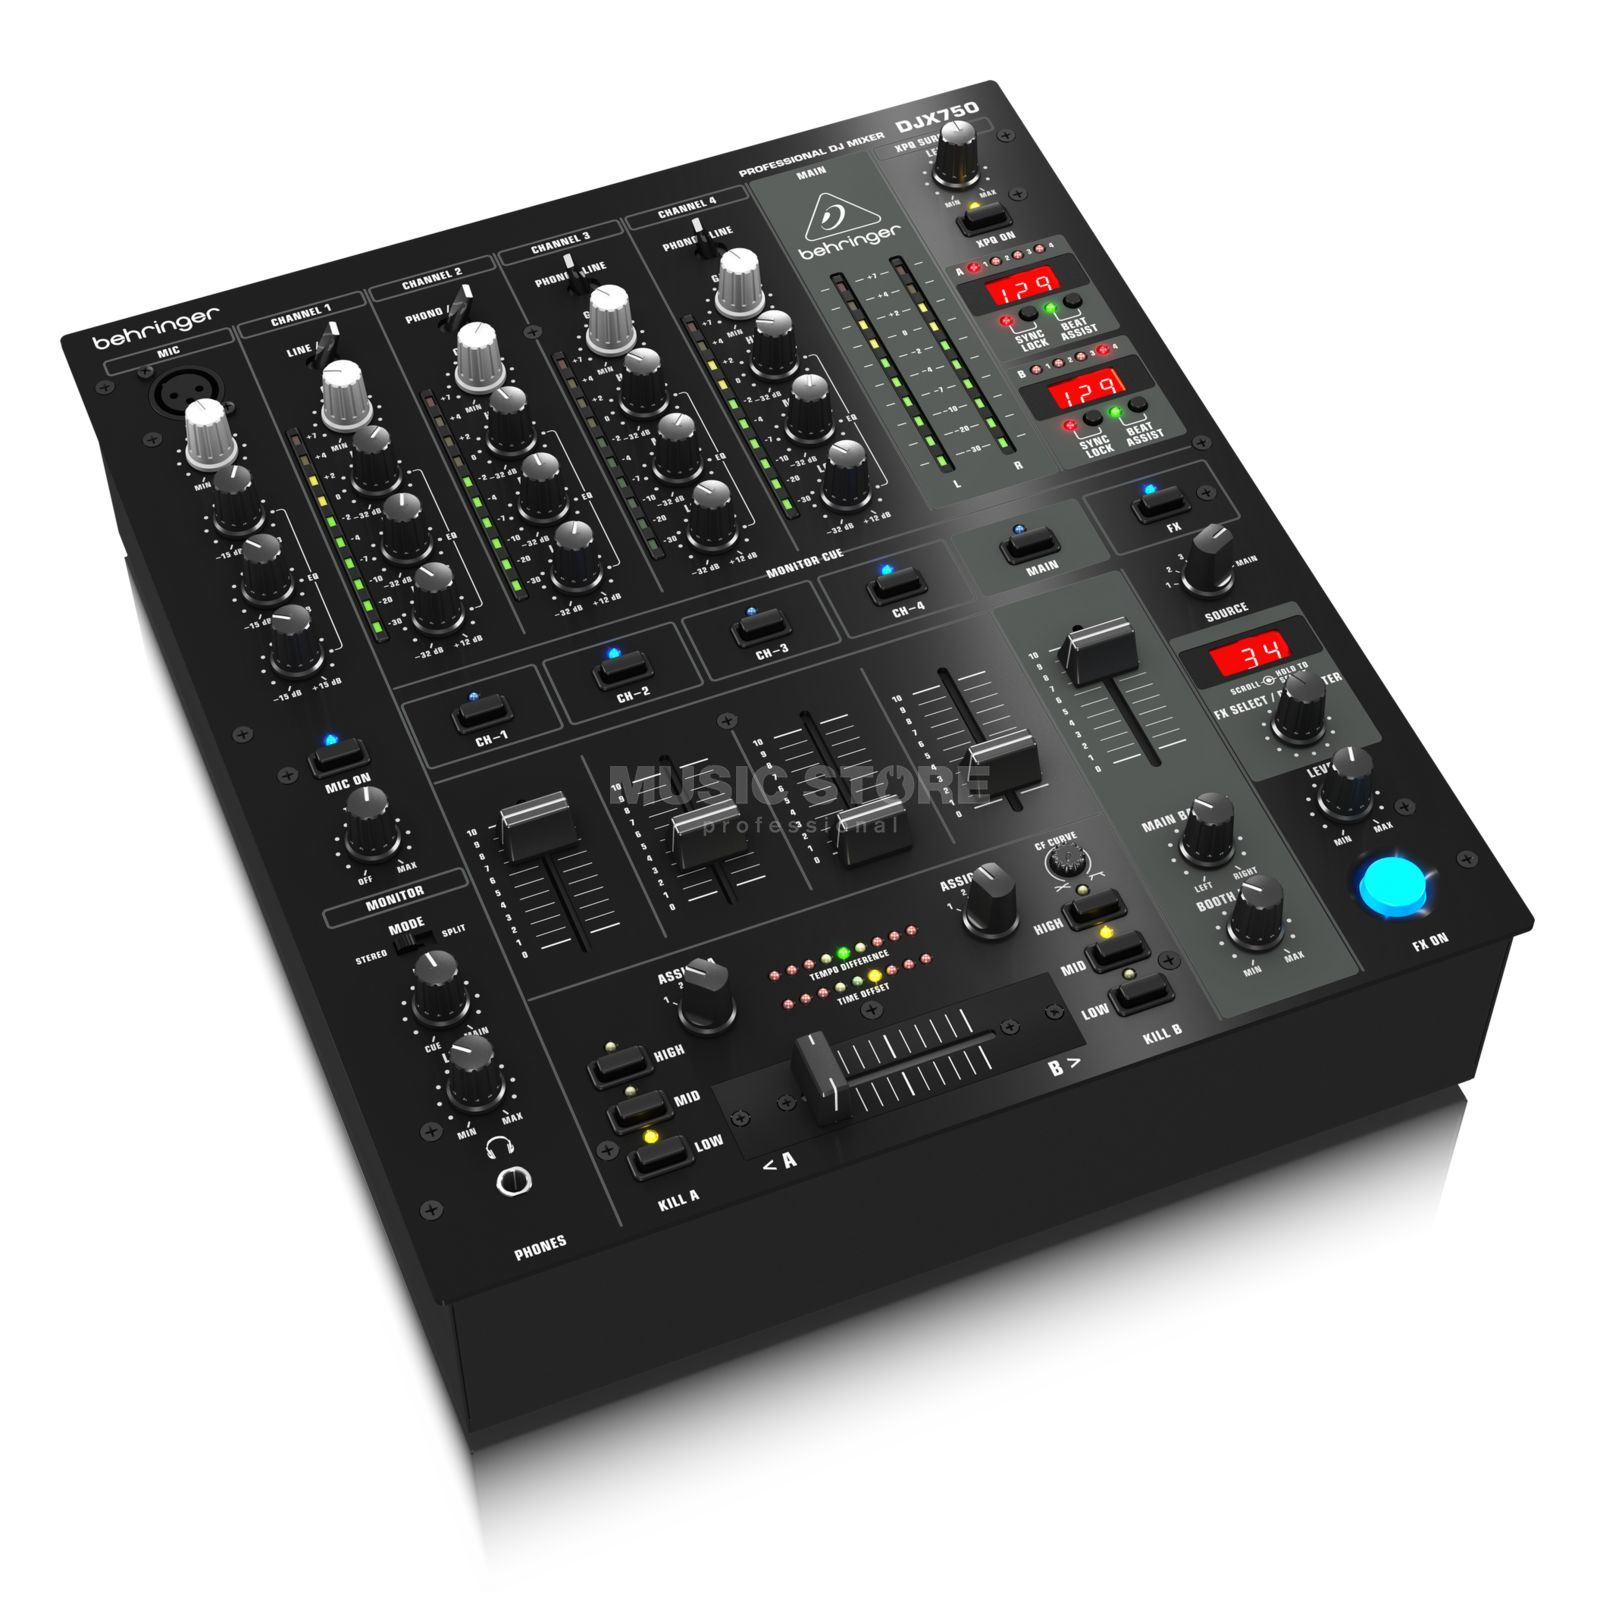 Behringer djx 750 table de mixage dj 5 canaux digital - Table de mixage behringer ...